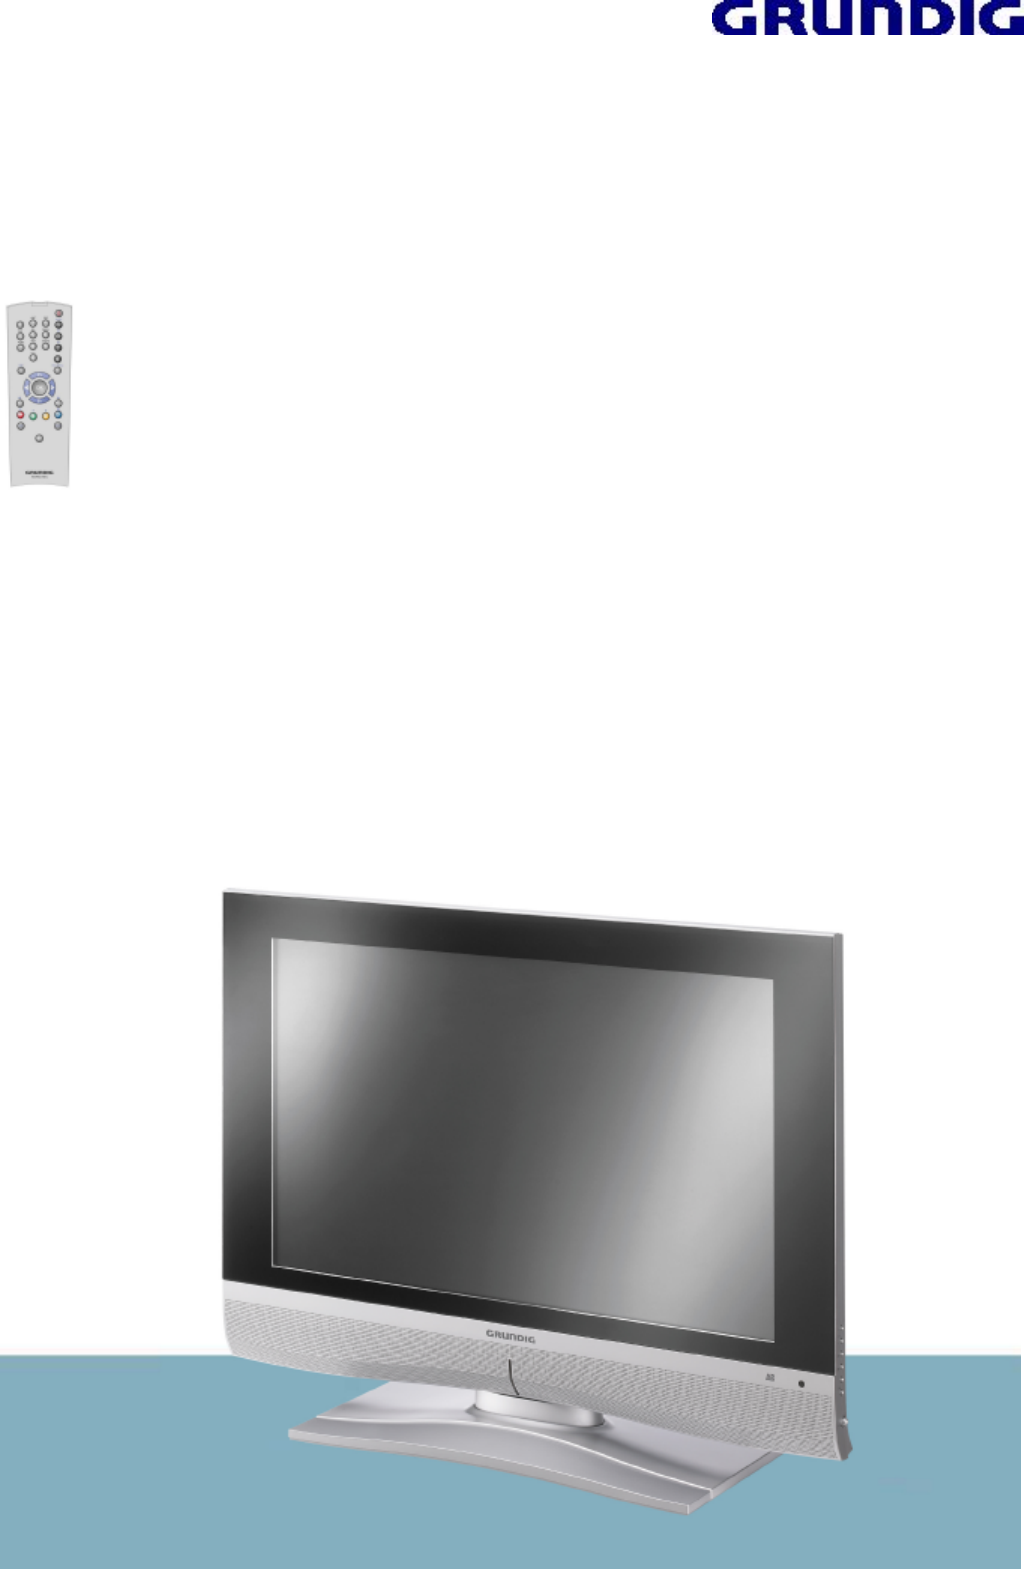 grundig flat panel television lxw 82 9622 dl user guide rh tv manualsonline com Grundig Majestic Console Grundig Console Stereo with Turntable